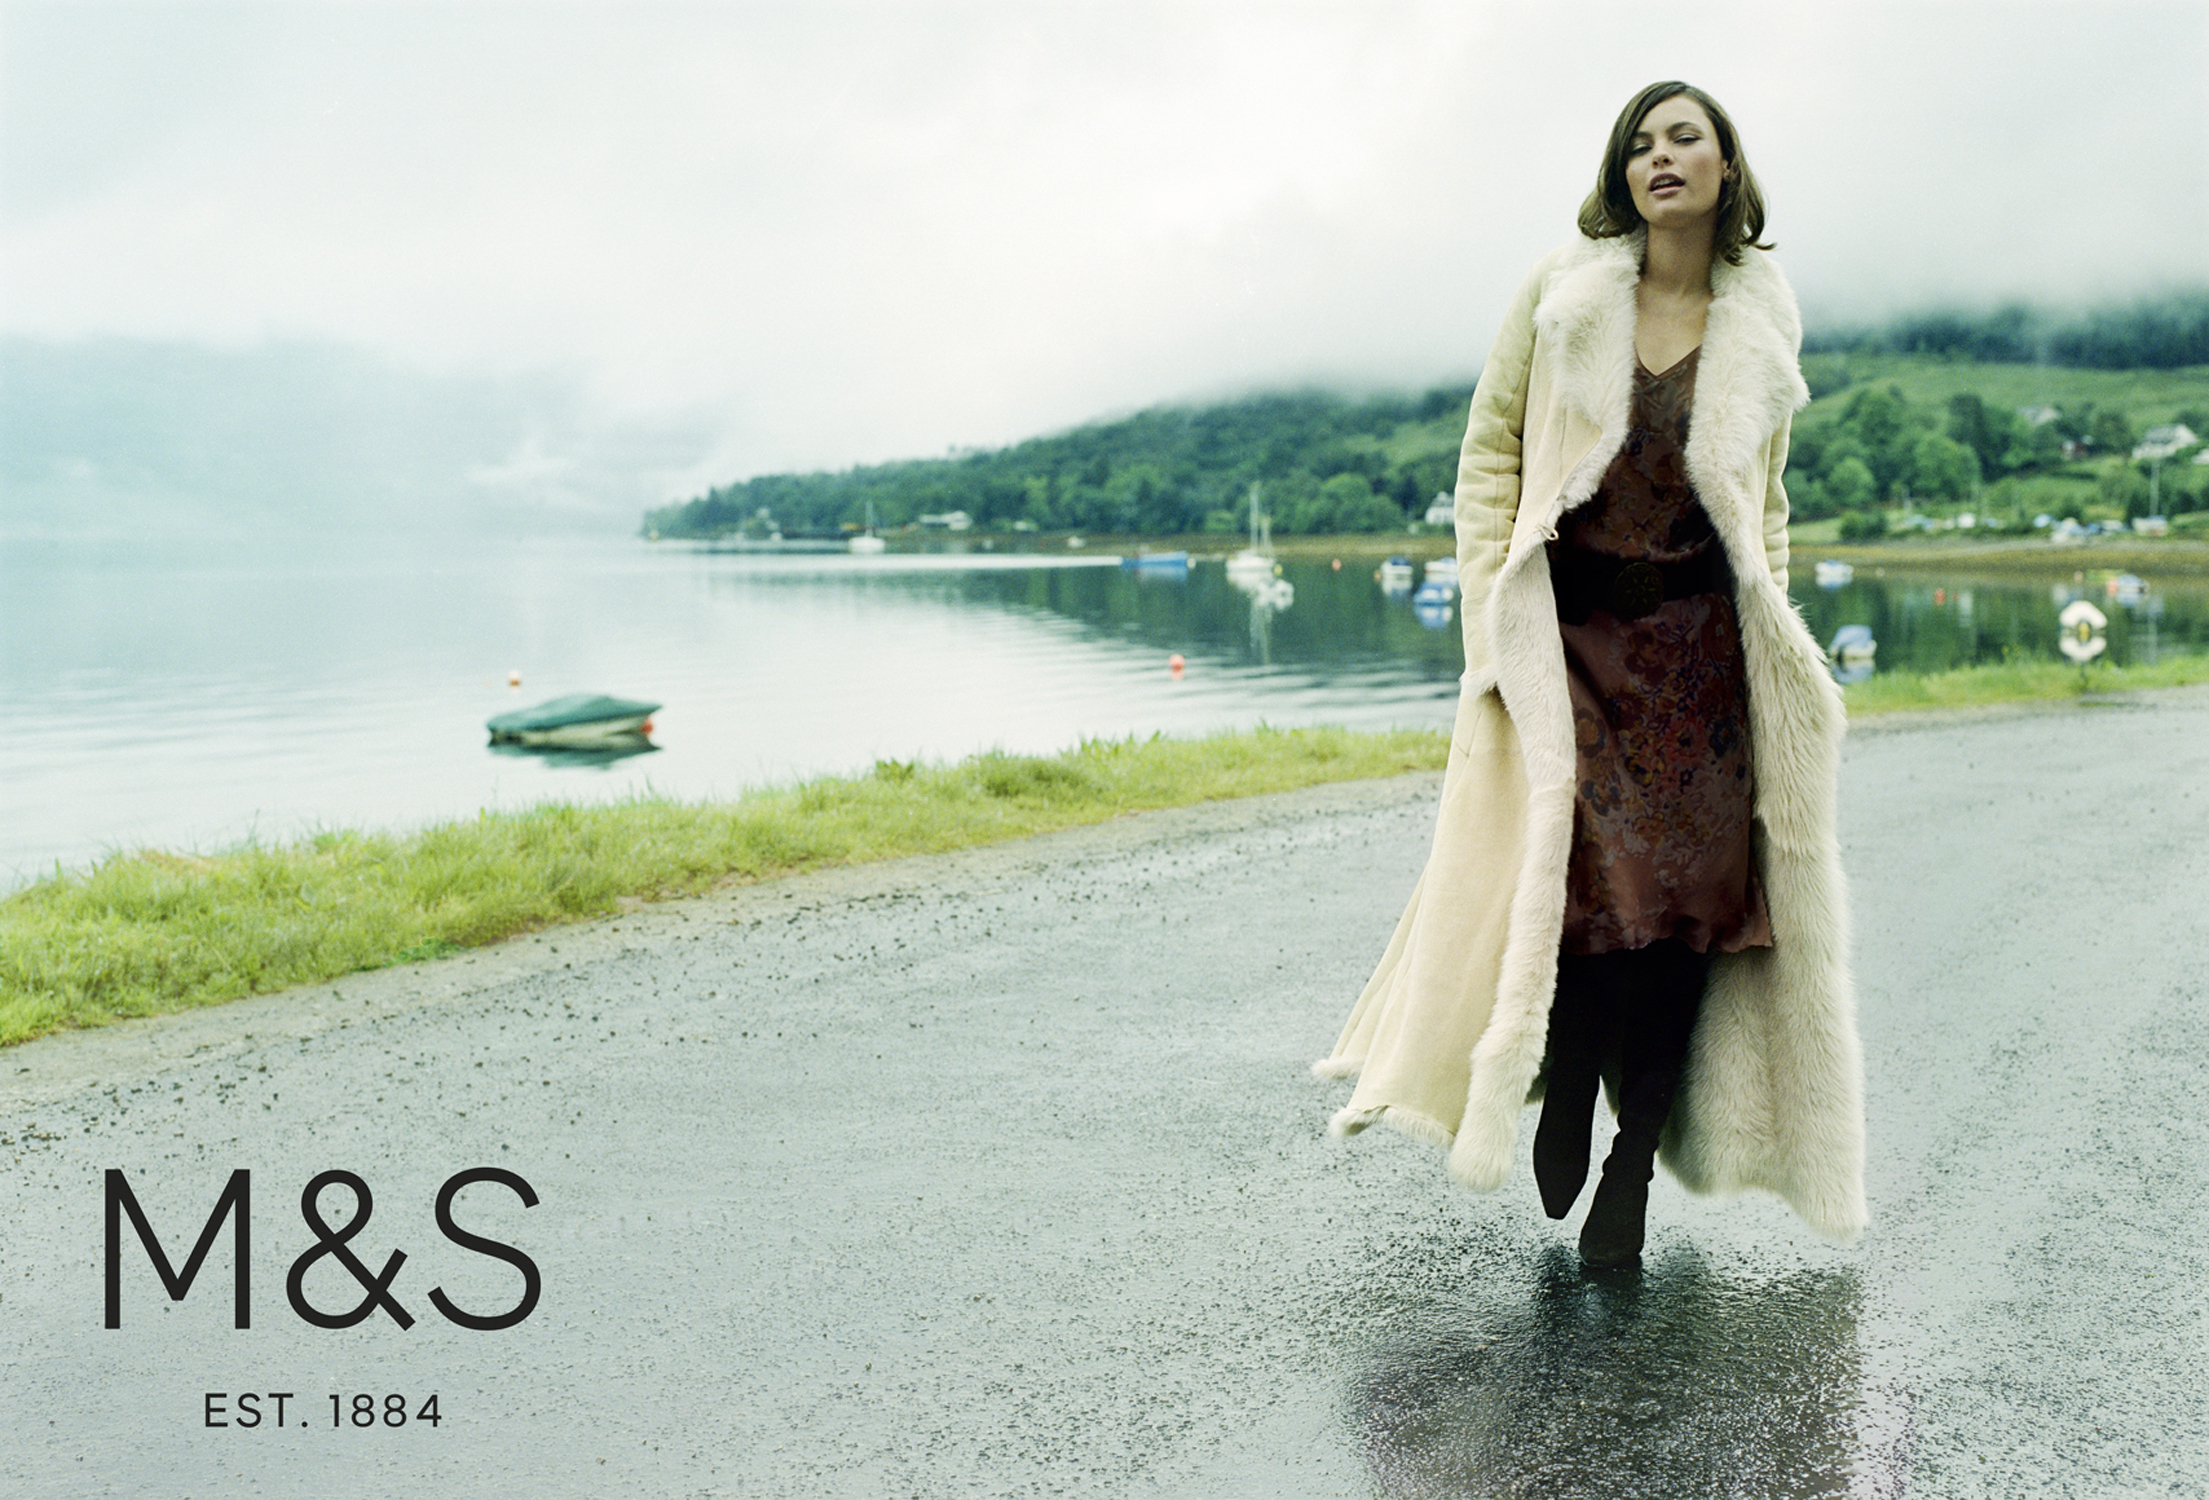 M&S Scotland_Marketingimage_Logo